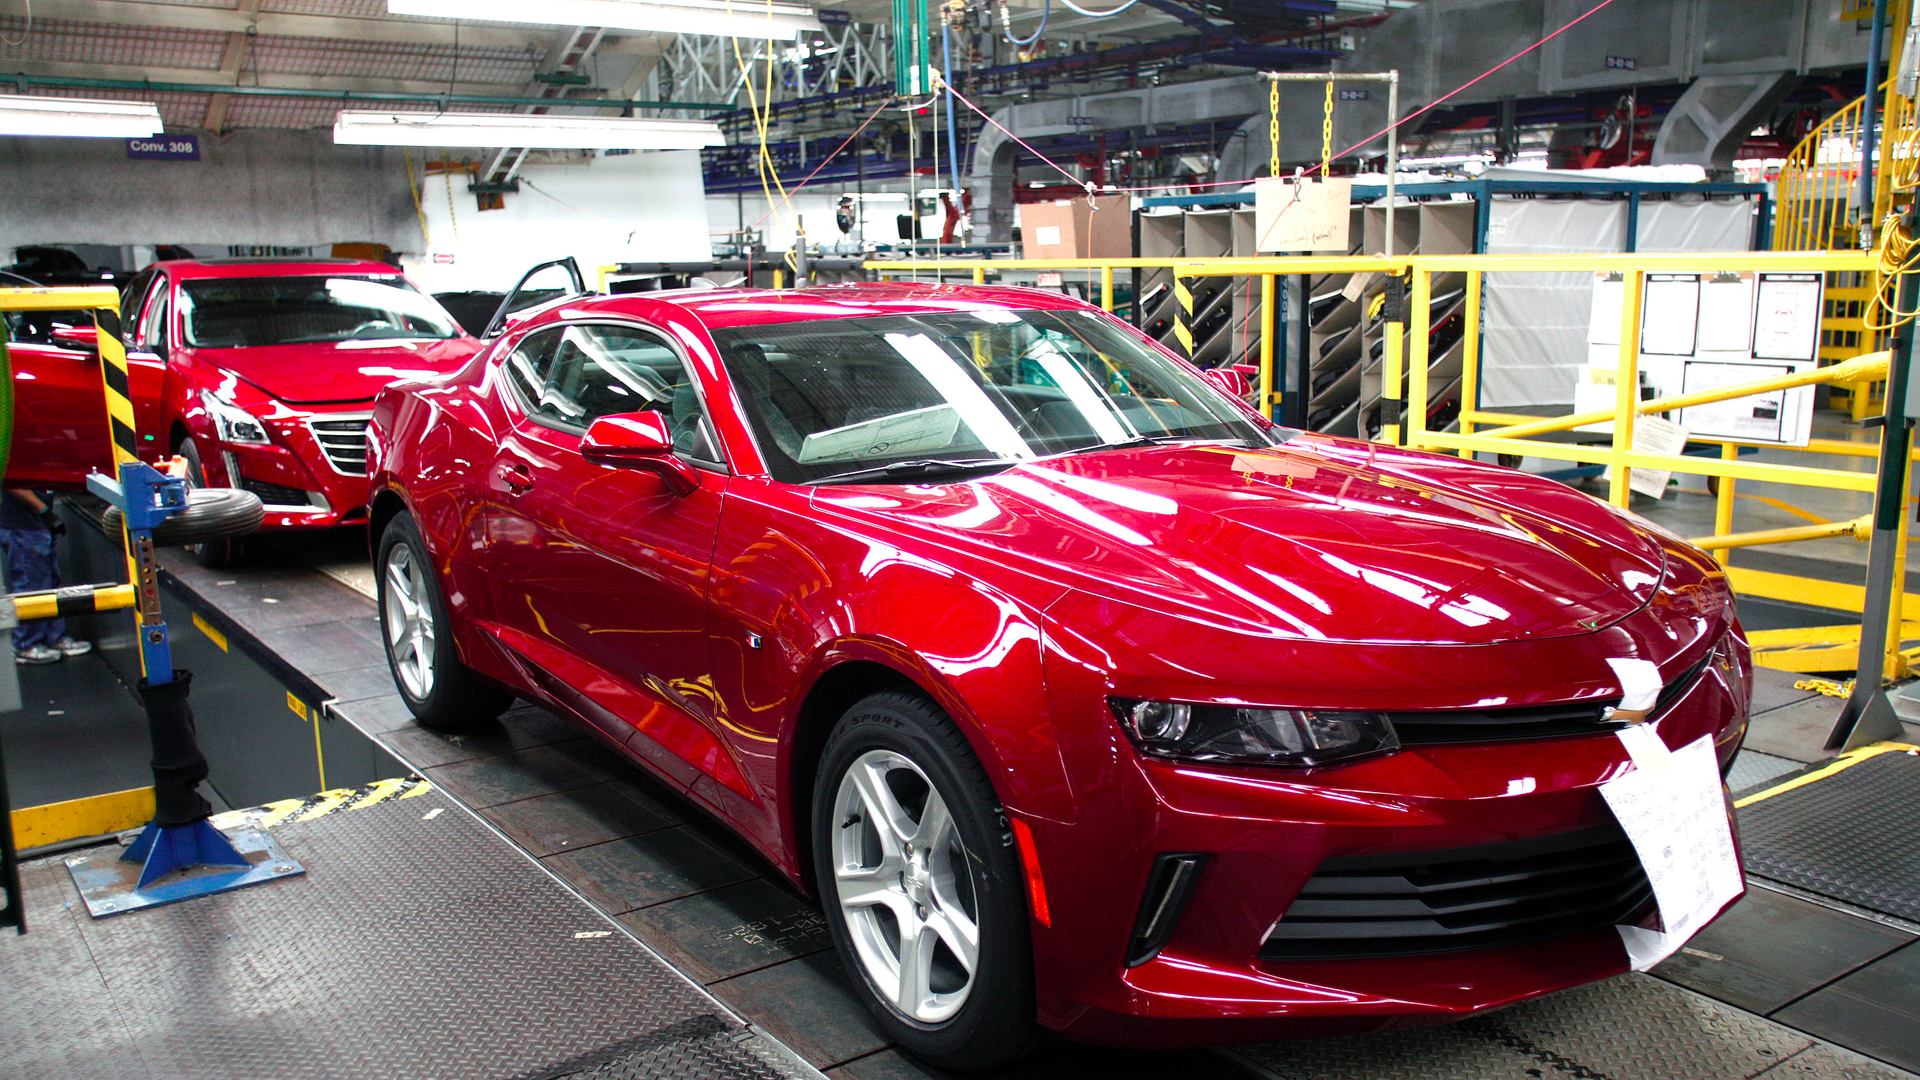 GM car on the assembly line.